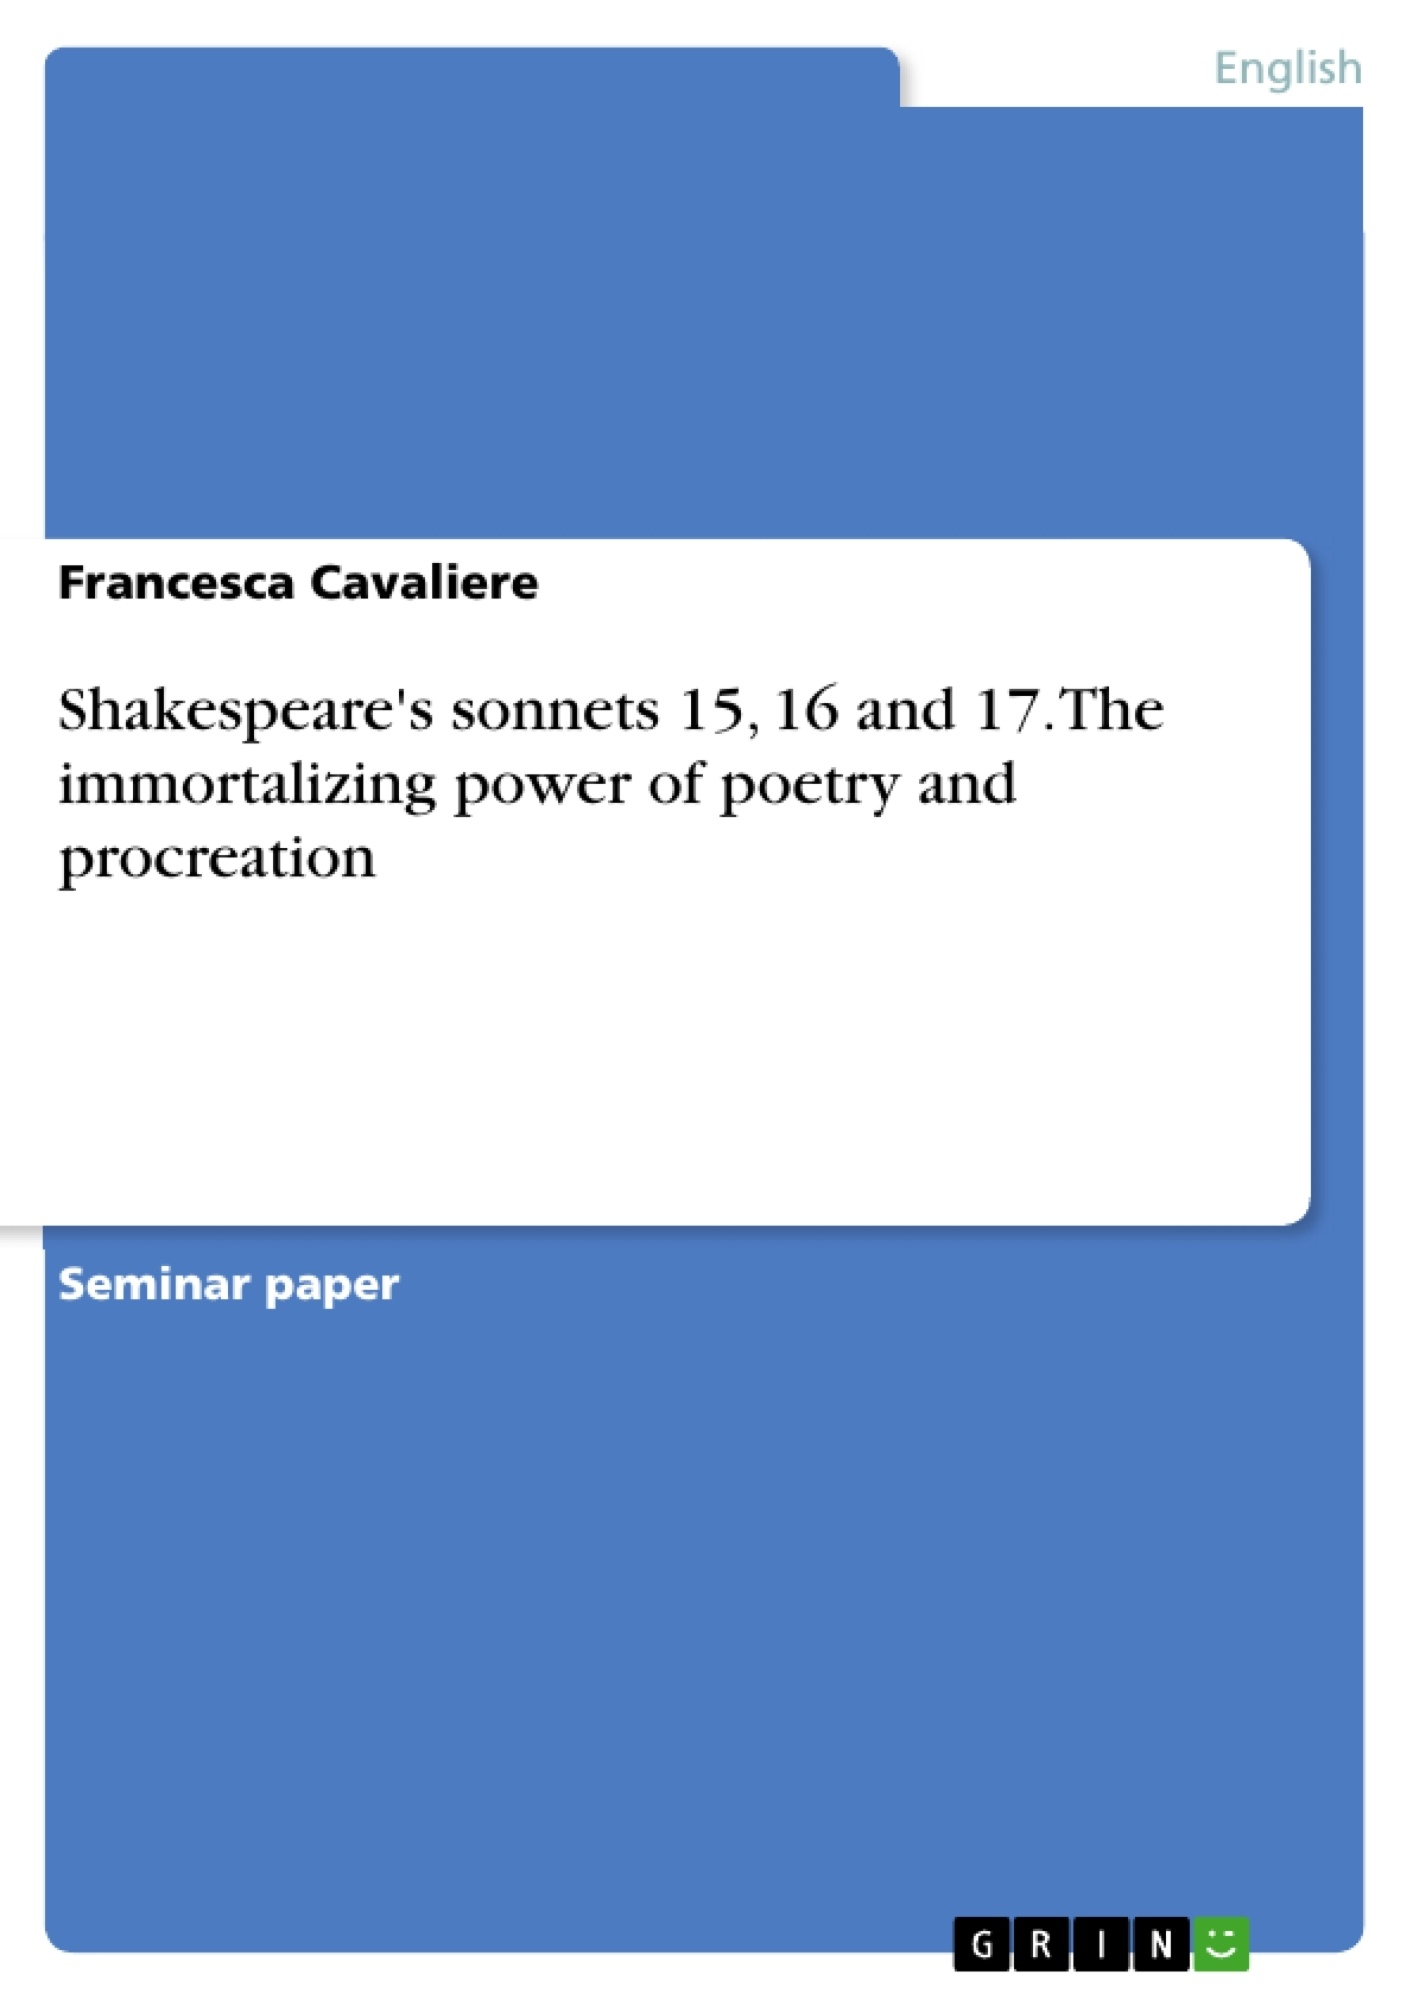 Title: Shakespeare's sonnets 15, 16 and 17. The immortalizing power of poetry and procreation